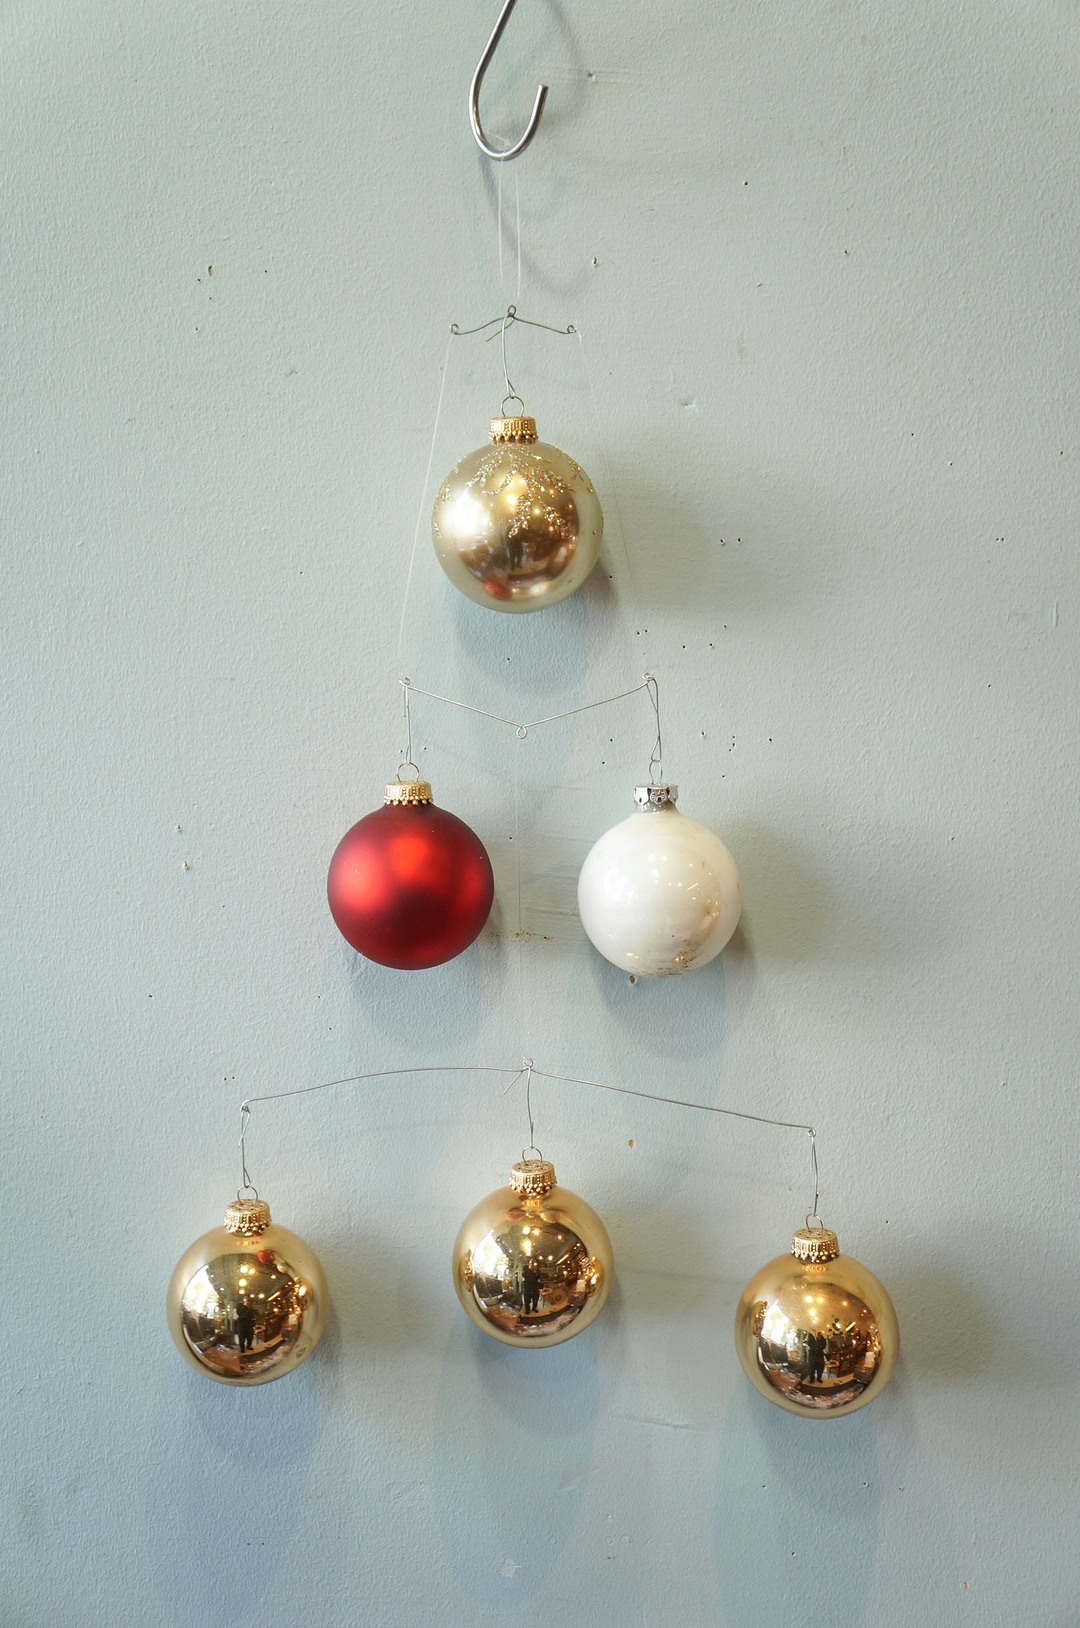 Vintage Blown Glass Christmas Ball Ornament/ヴィンテージ クリスマス オーナメント 吹きガラス ボール レトロ 6個セット 7